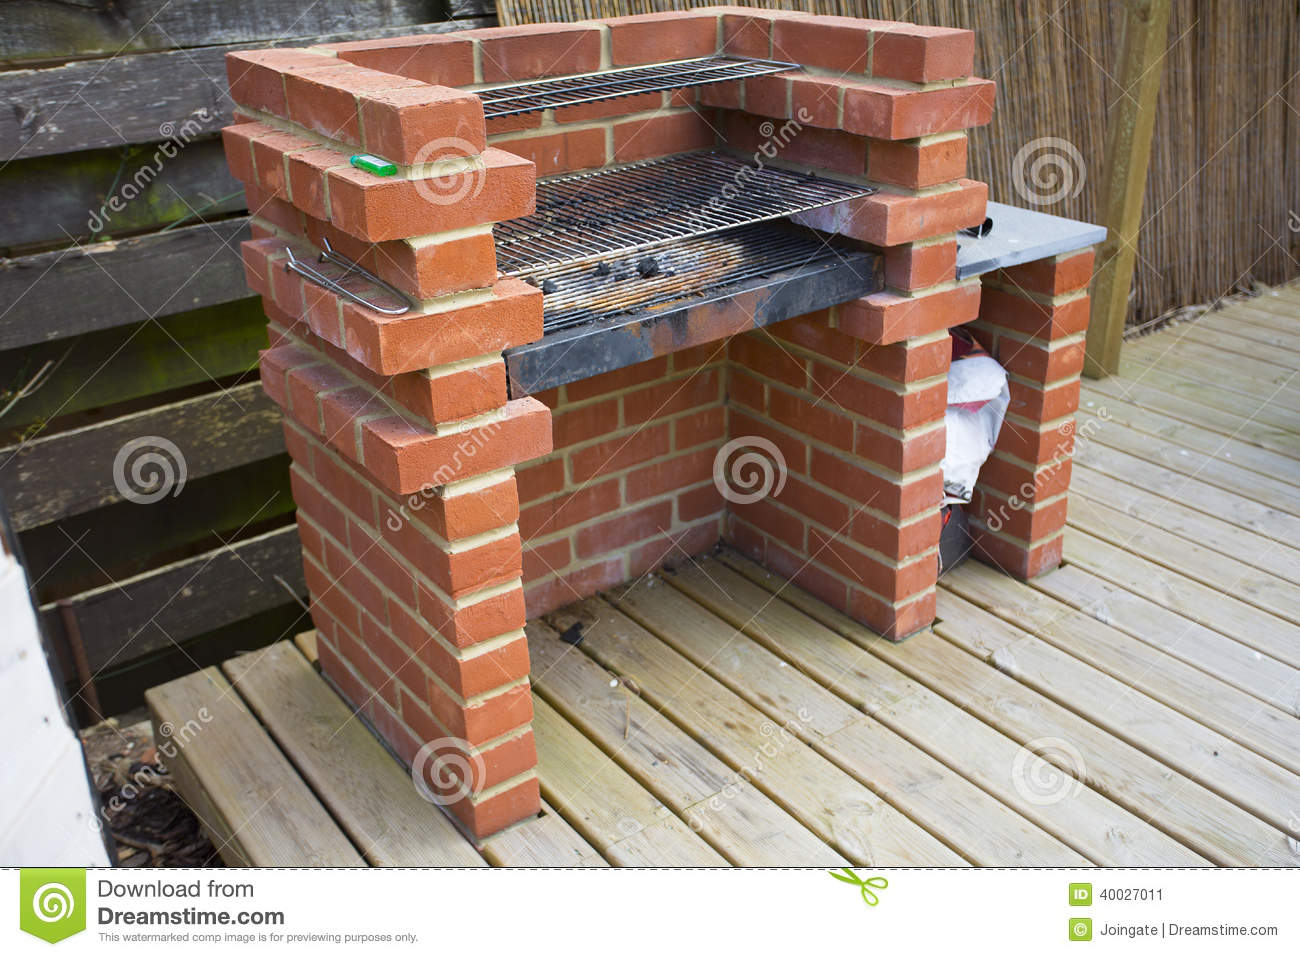 la maison faite a construit le barbecue de brique photo